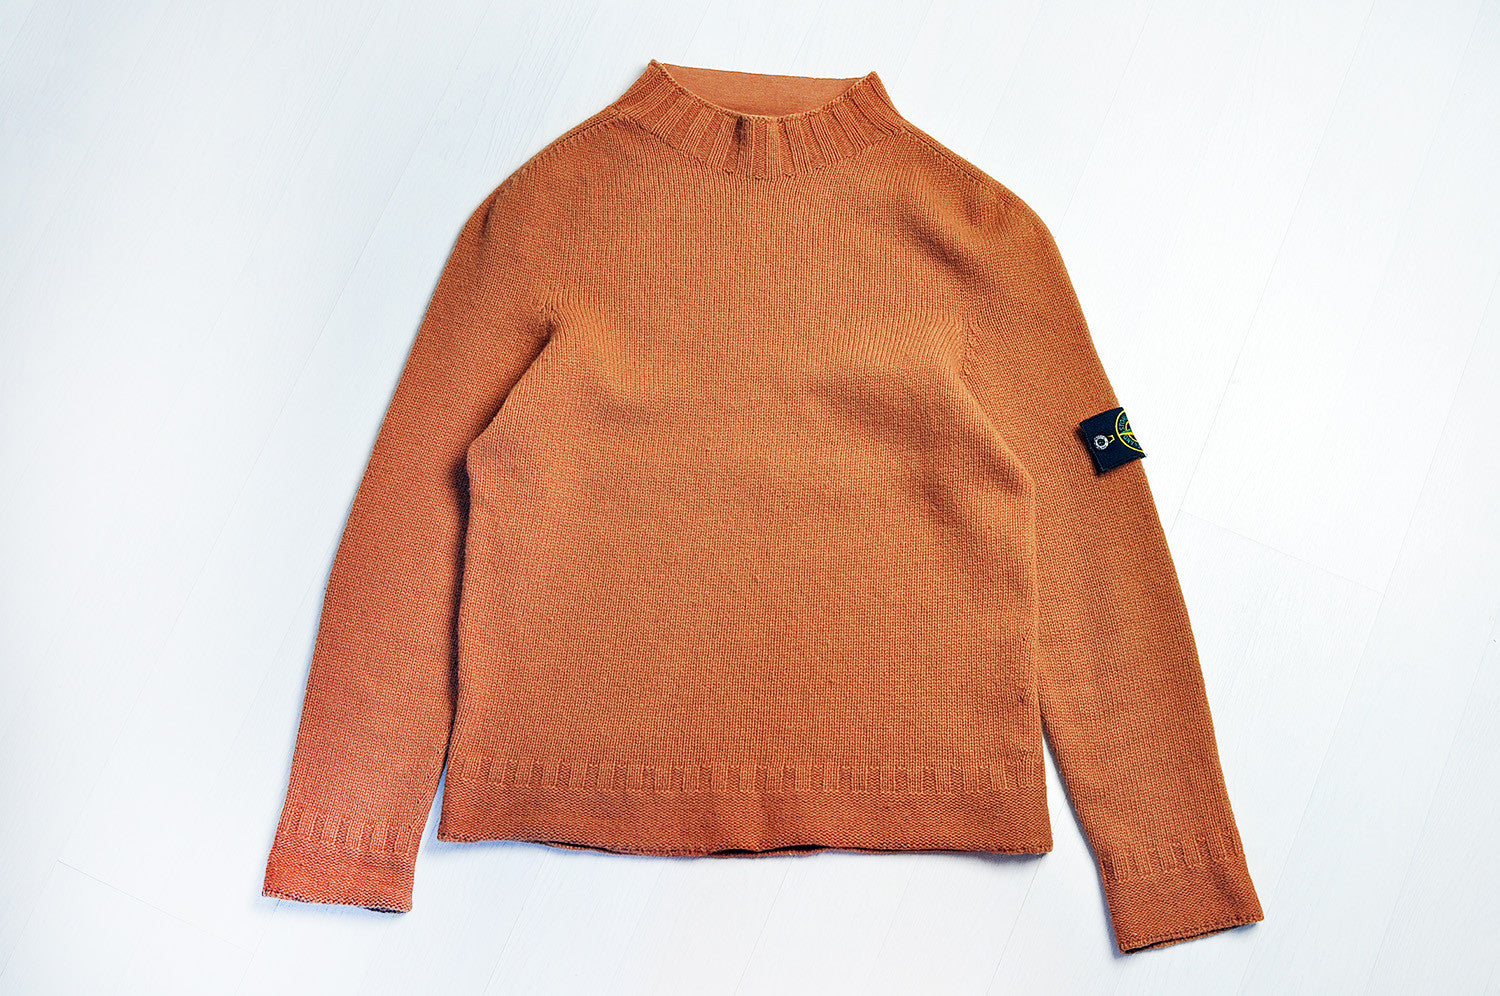 Vintage Stone Island Rustic Orange Lana Wool Knit Jumper/Sweater